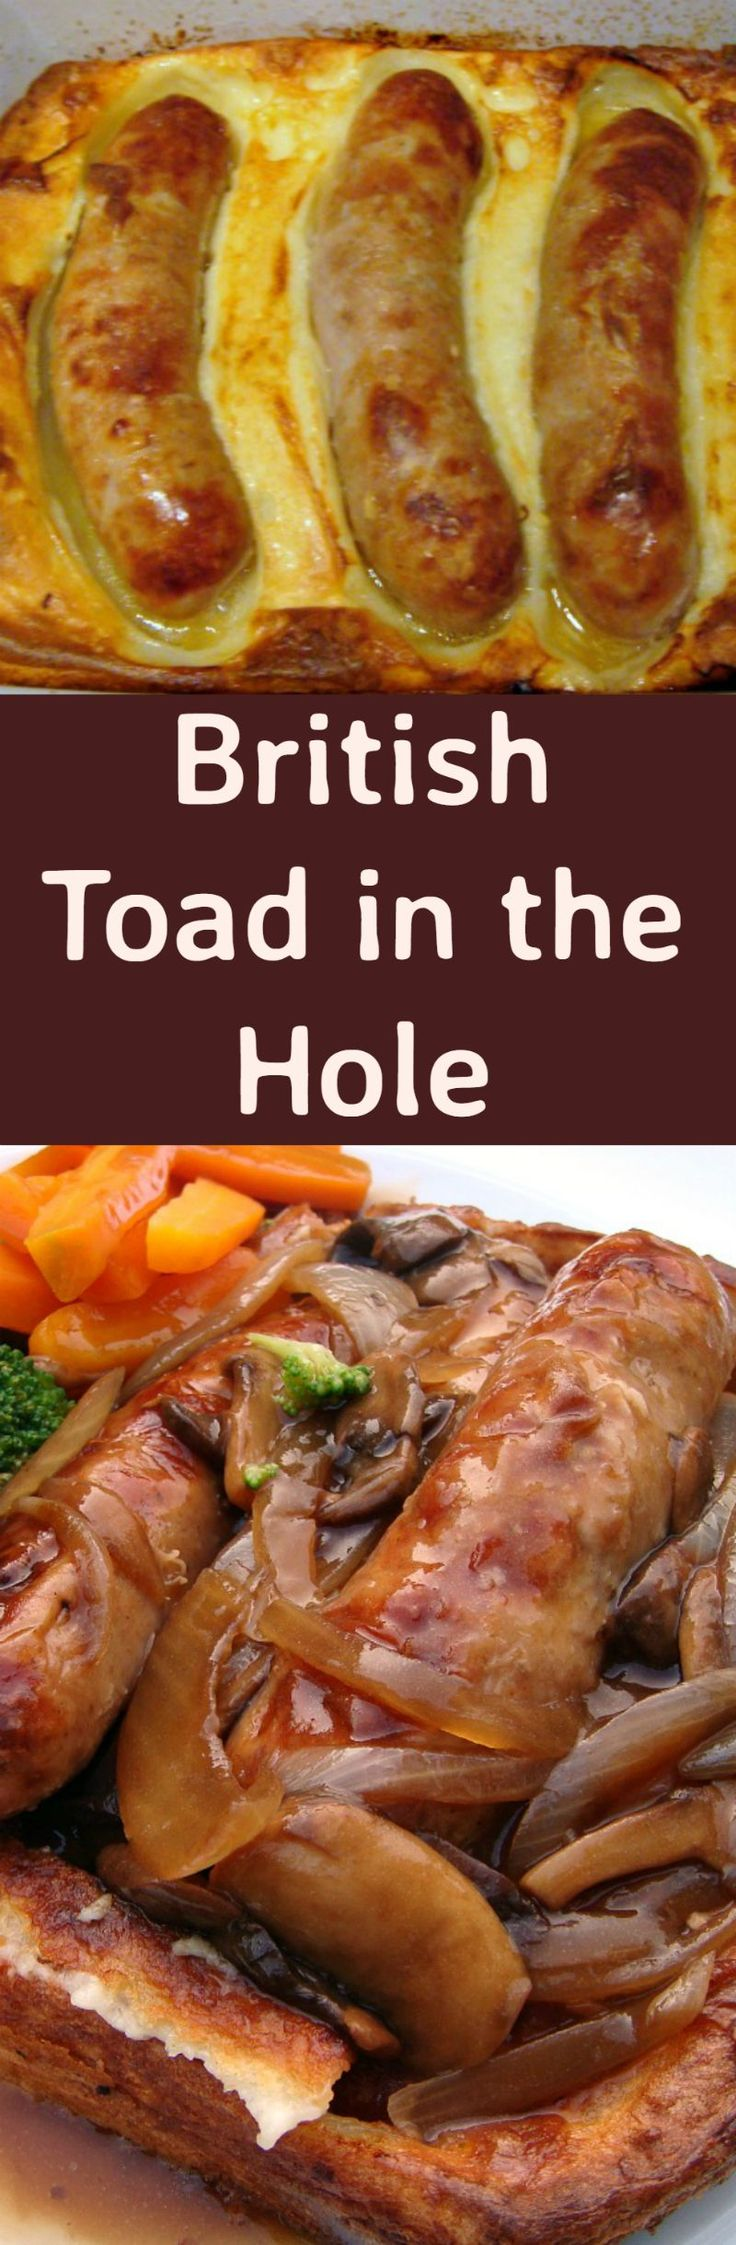 256 best british food images on pinterest british food recipes british toad in the hole its a delicious easy dinner with sausages baked in forumfinder Images